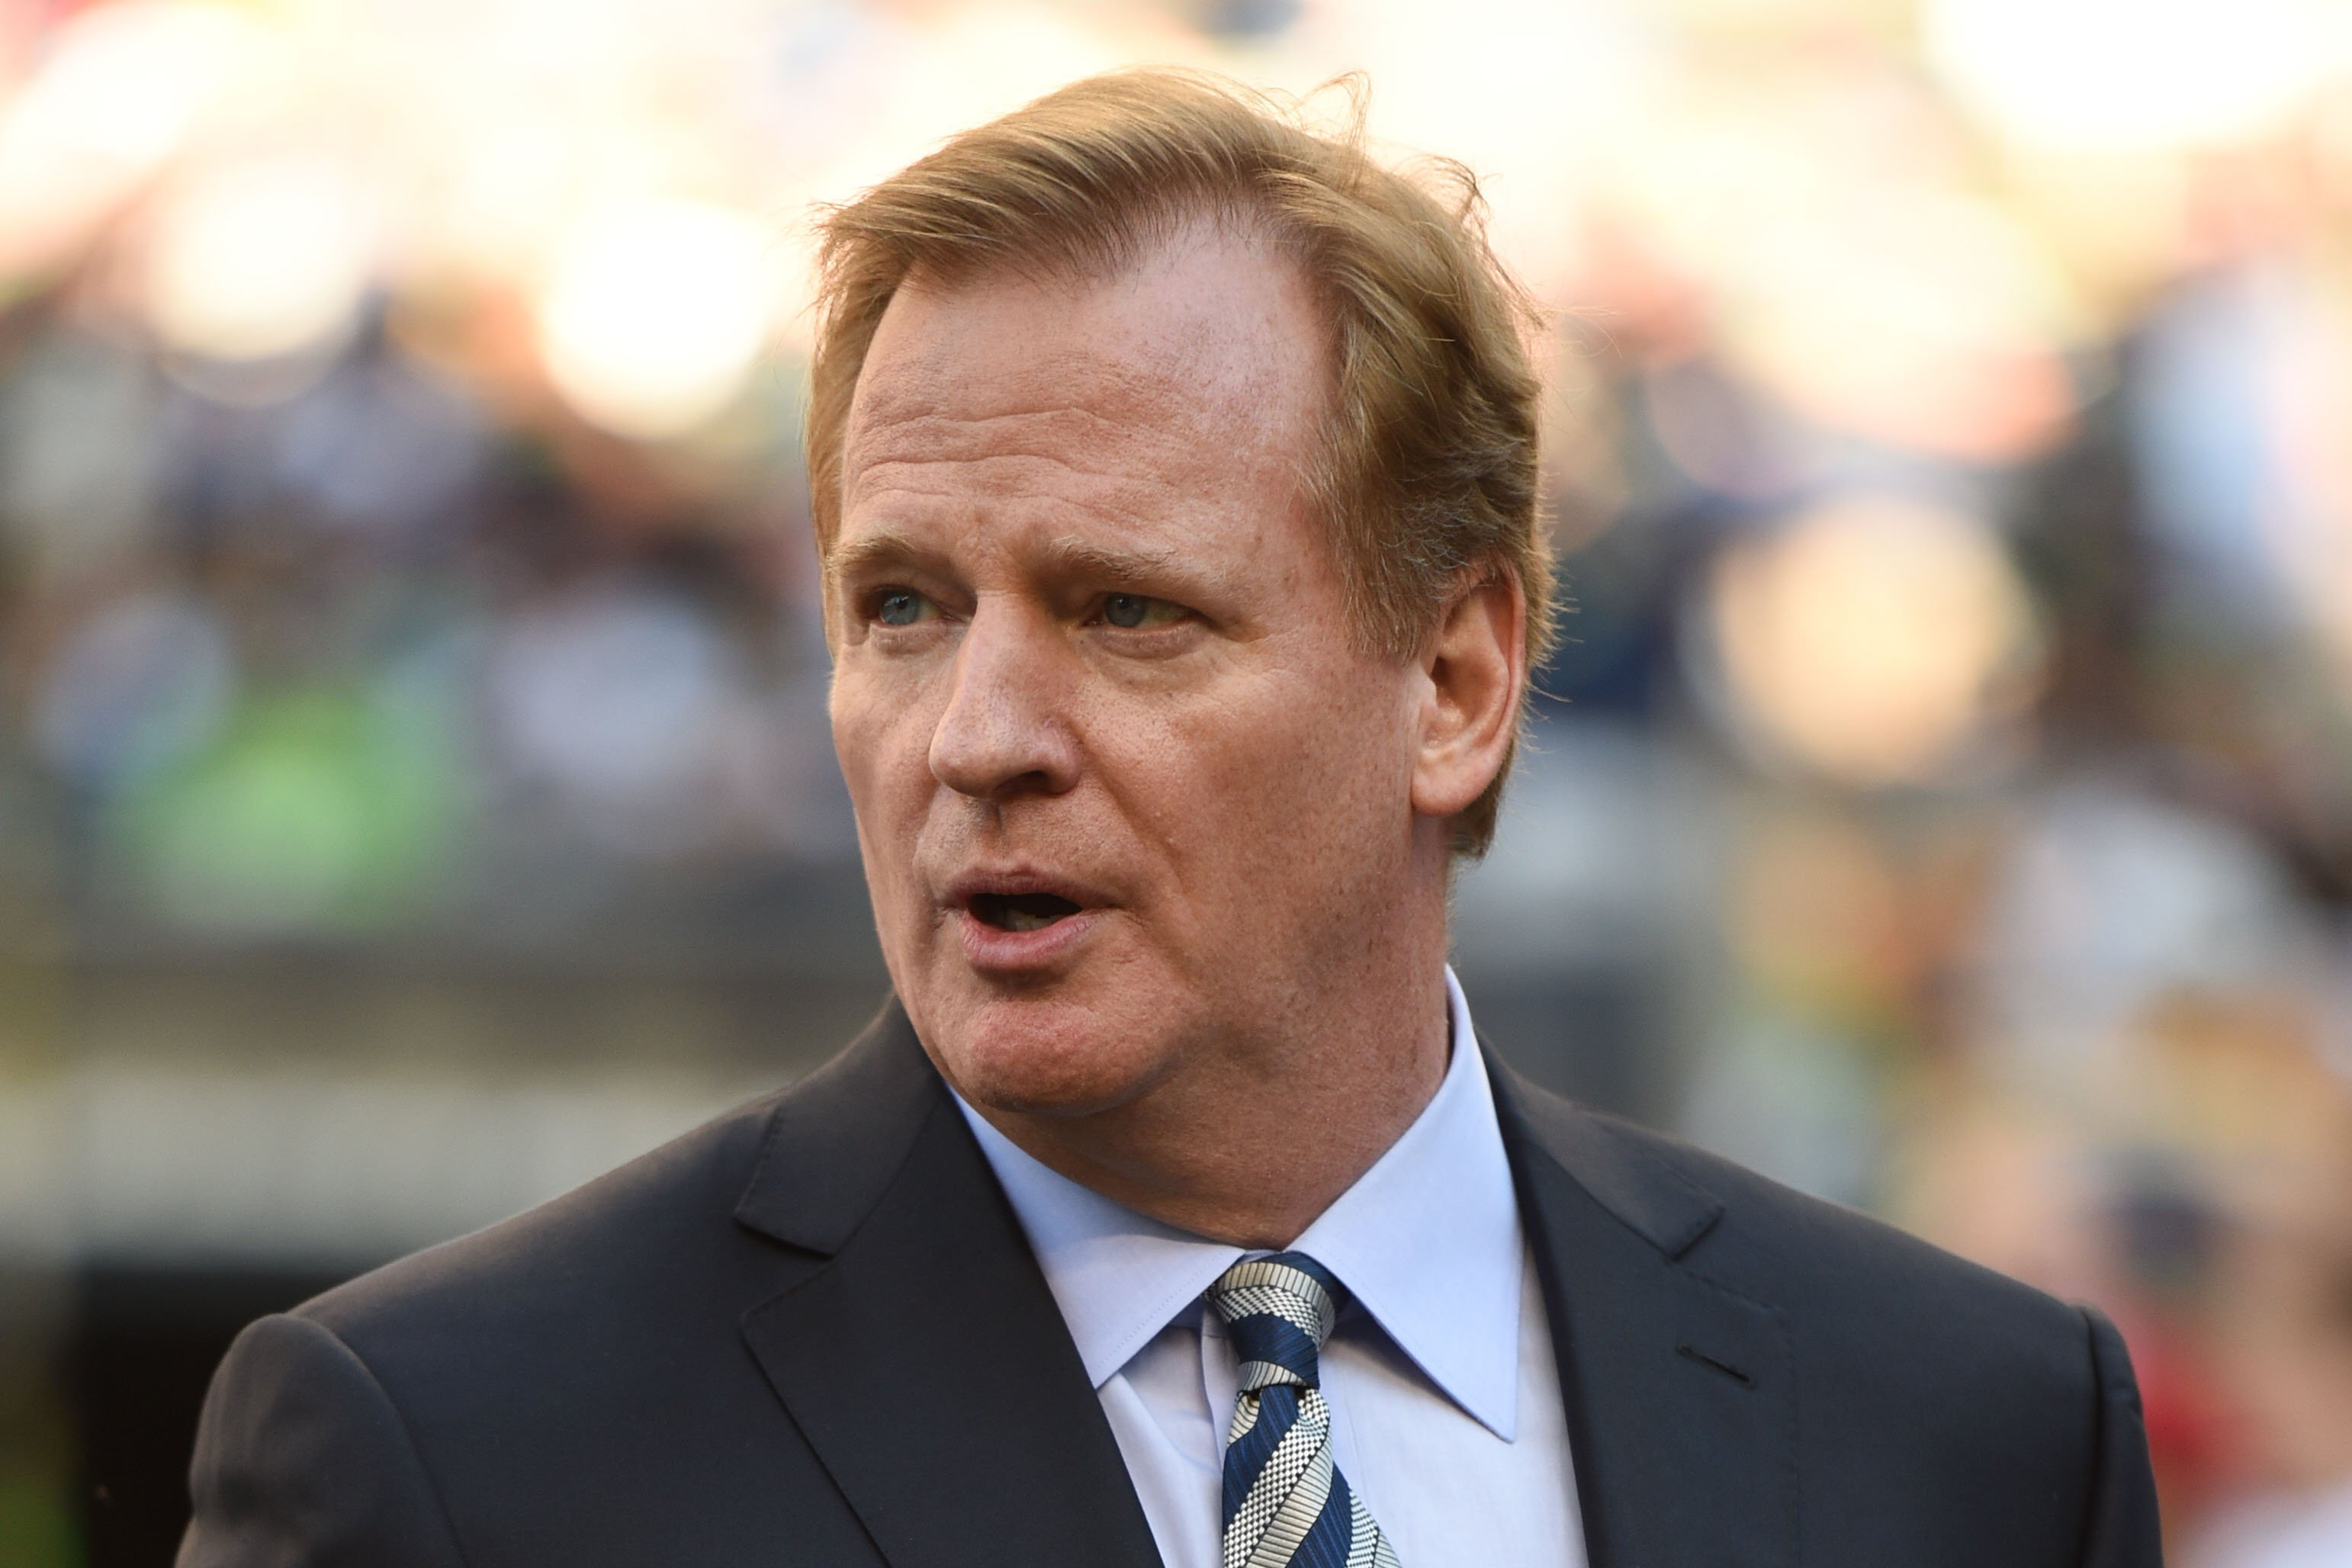 NFL commissioner Roger Goodell walks the sidelines before the game between the Seattle Seahawks and the Green Bay Packers at CenturyLink Field on Sept. 4, 2014 in Seattle.